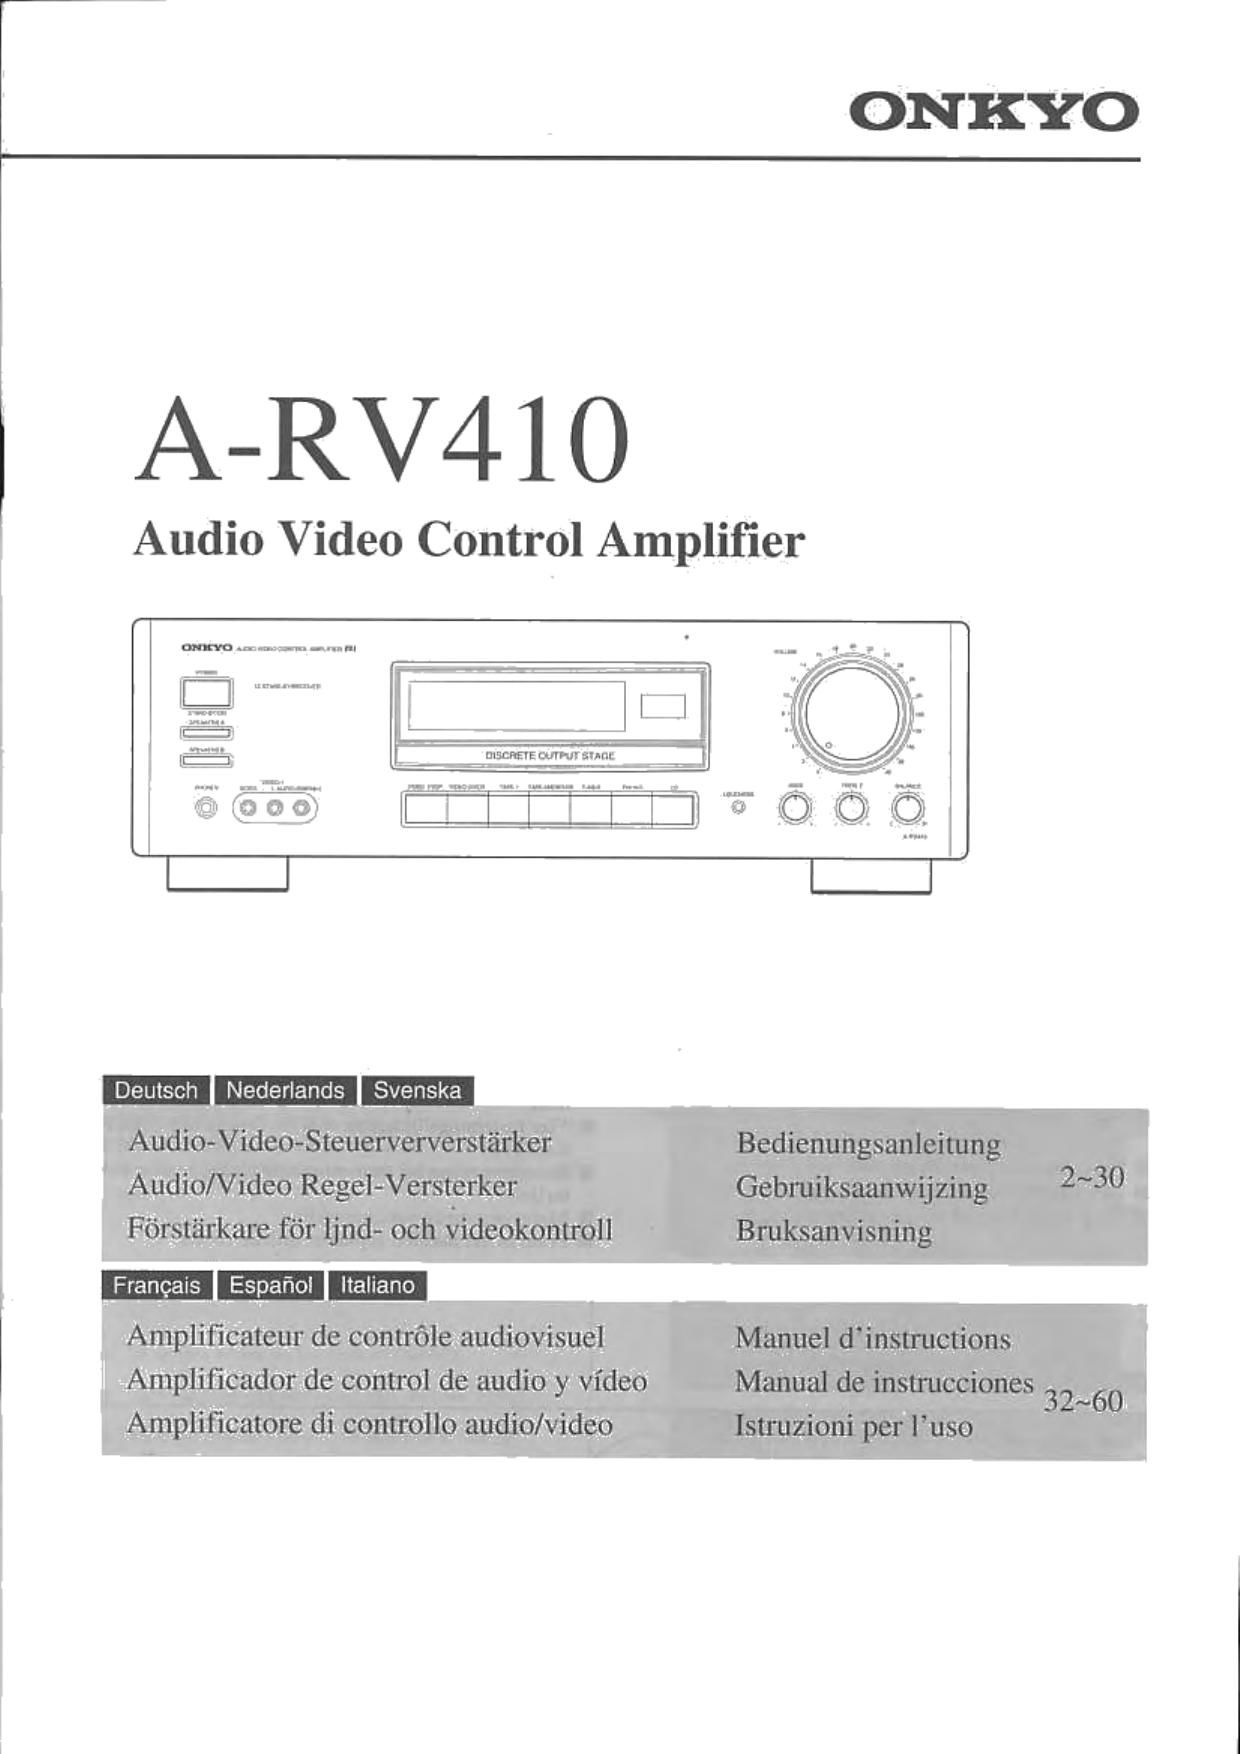 onkyo arv 410 owners manual rh audioservicemanuals com onkyo m 501 owner's manual onkyo owner manuals